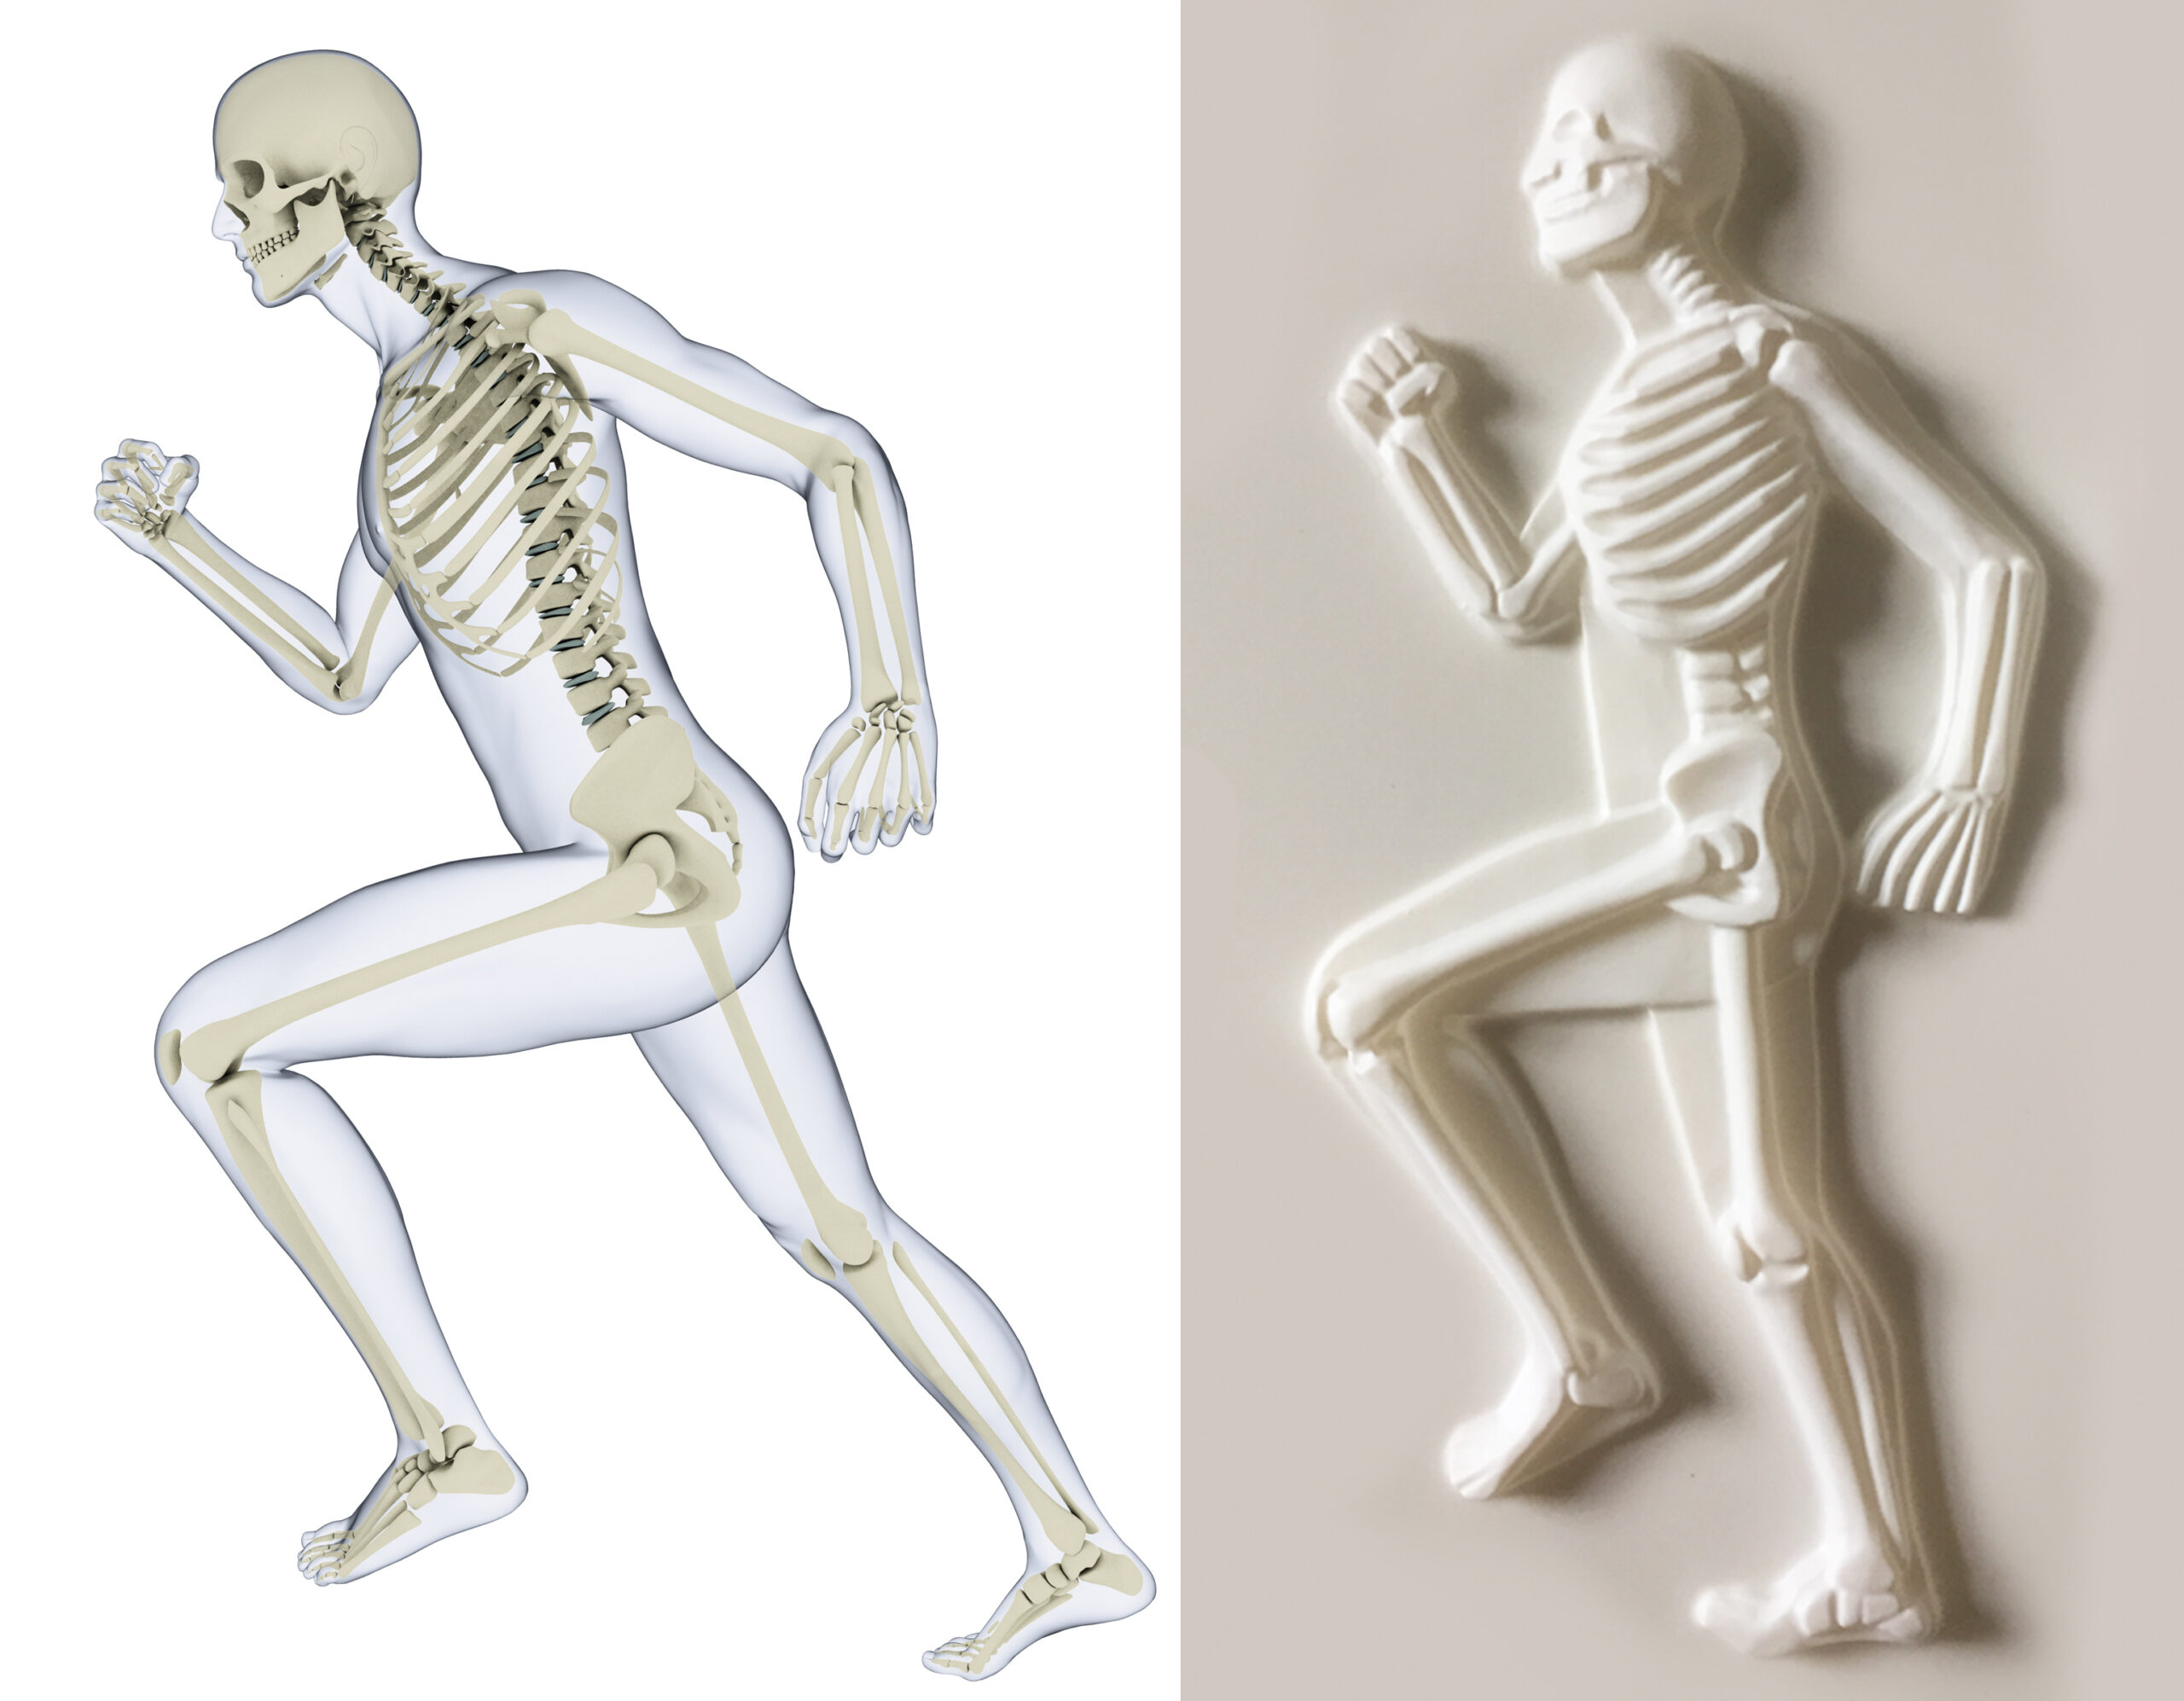 Skeleton tactile from The Body Owner's Guidebook, running to the left, plus it's corresponding illustration.